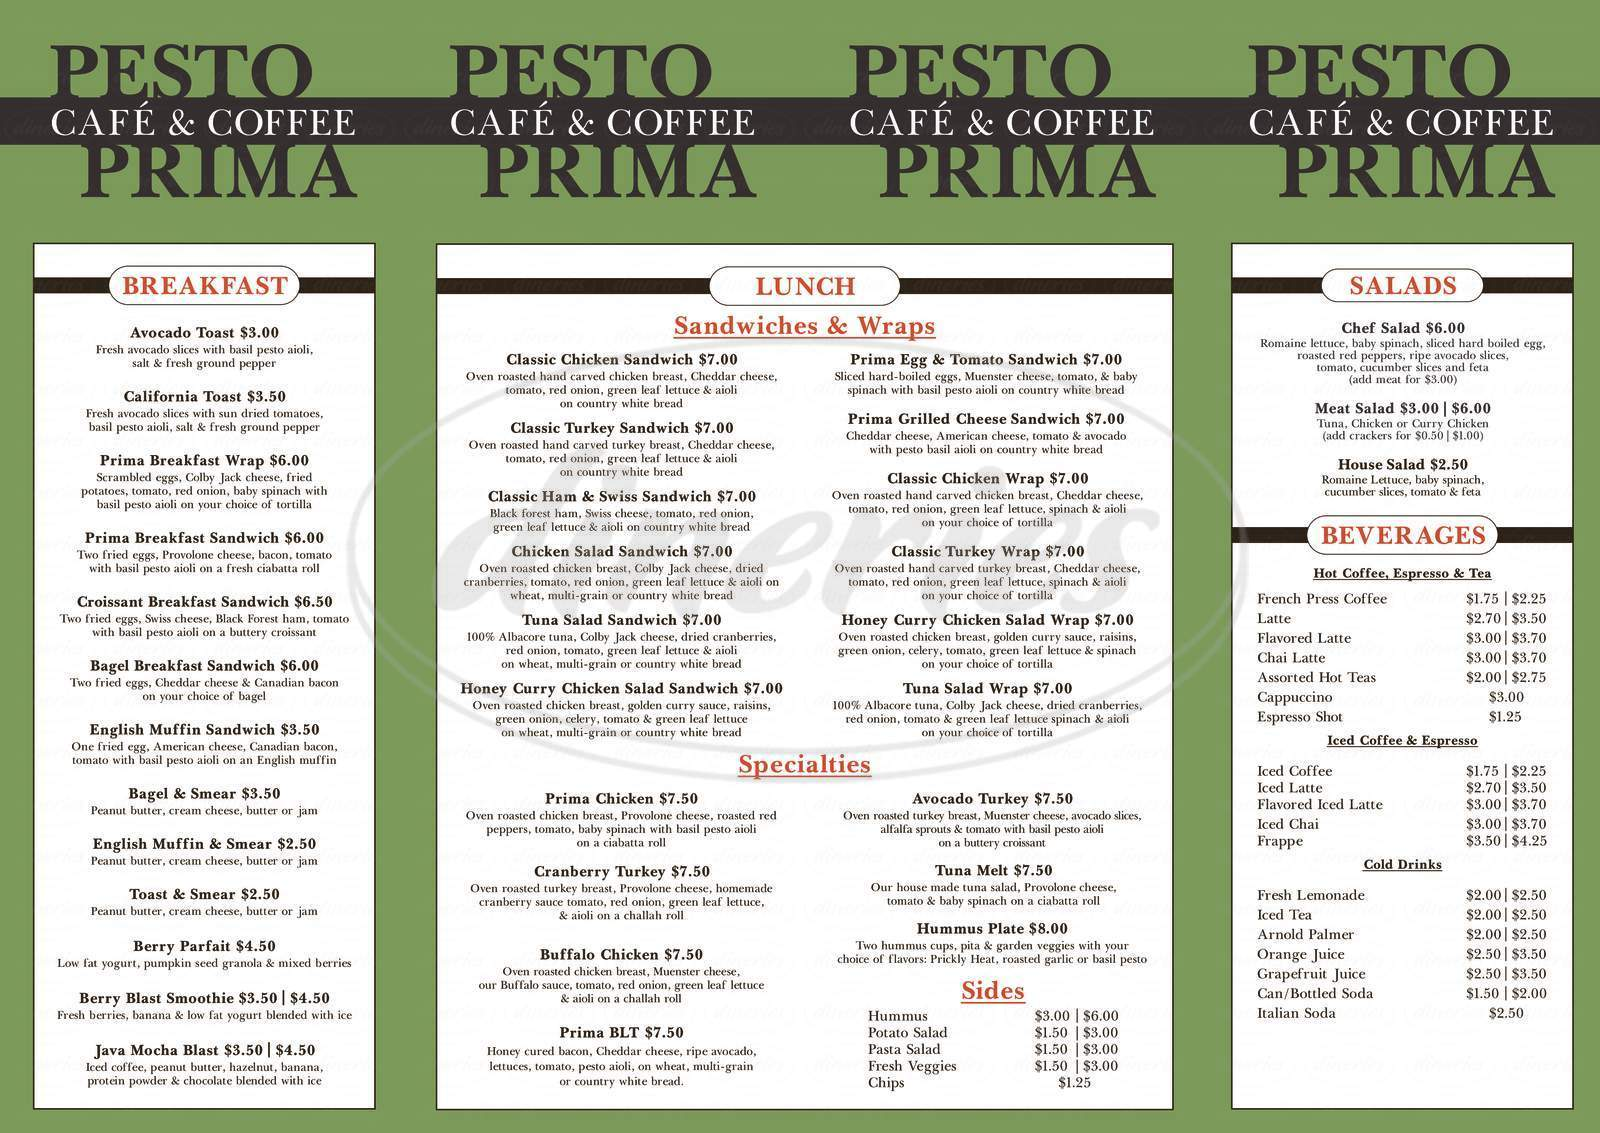 menu for Pesto Prima Cafe & Coffee